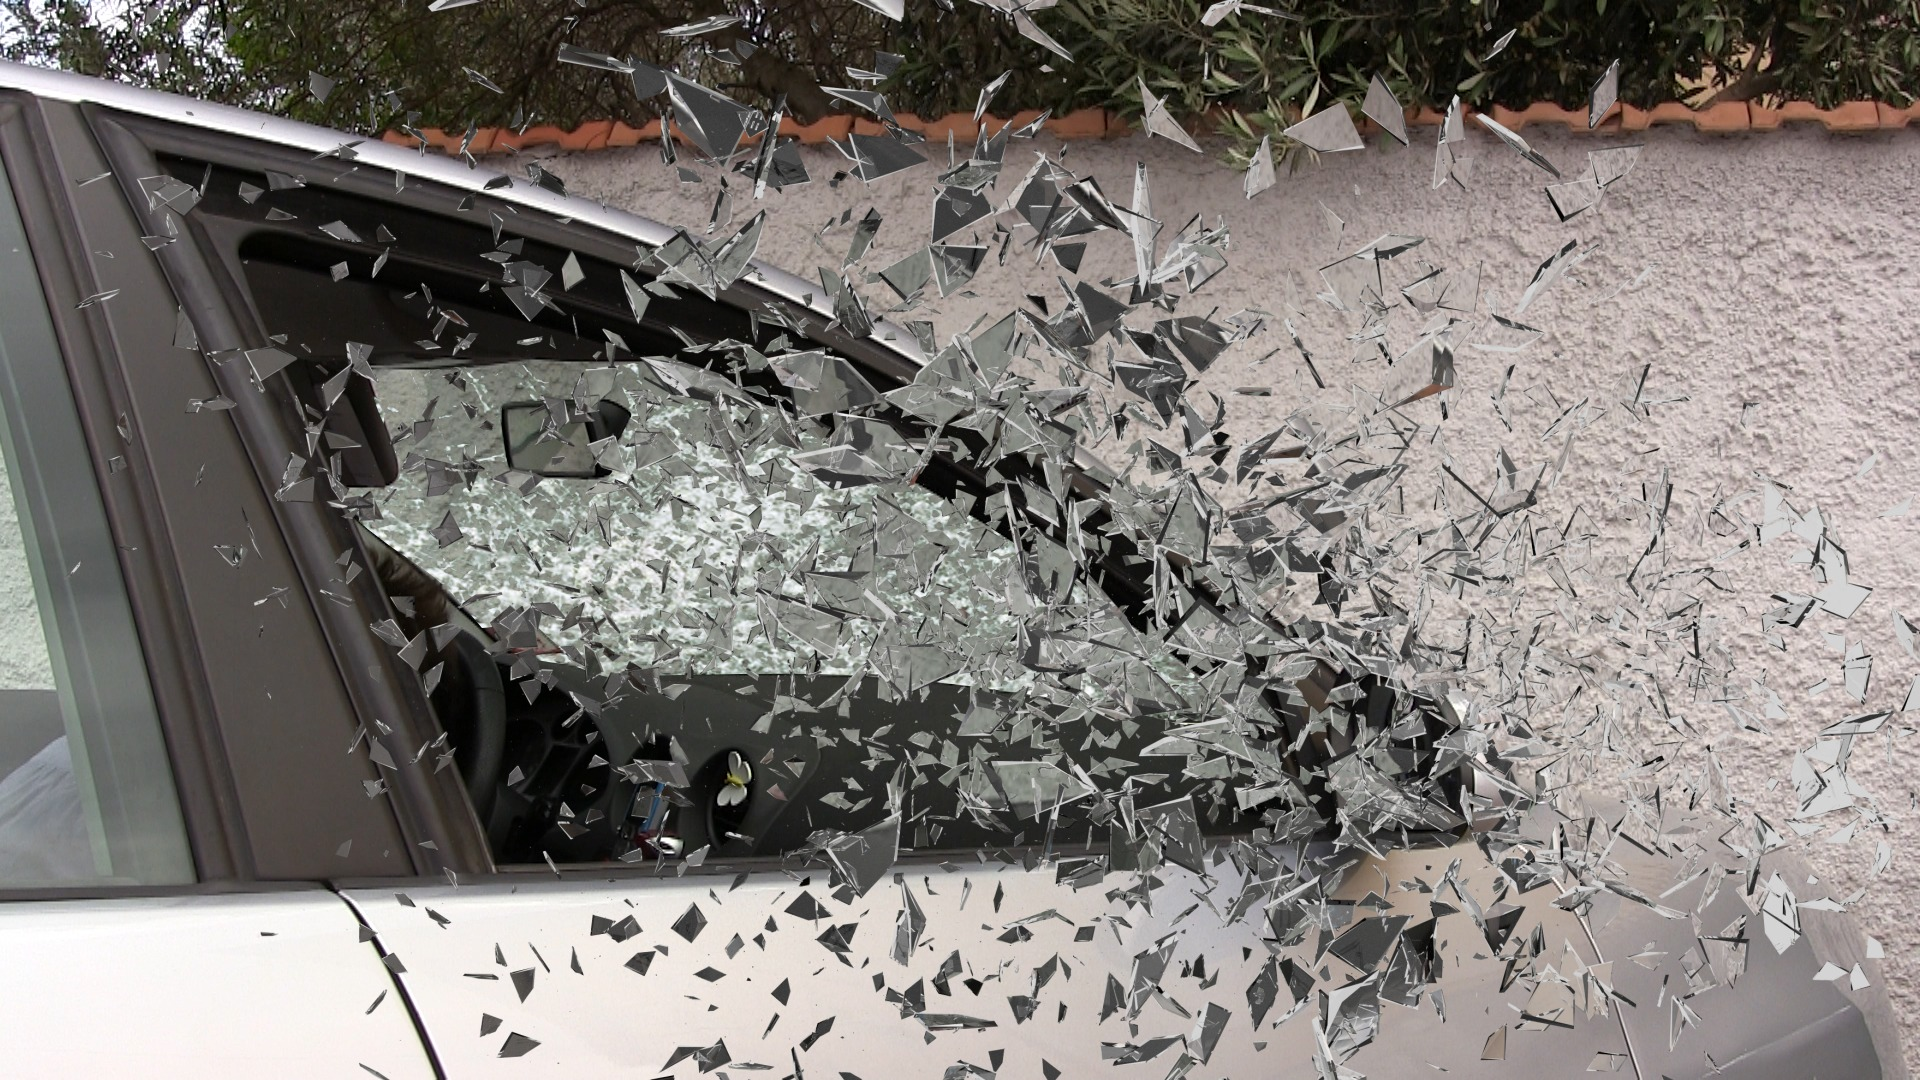 Shattering Glass in Car Accident